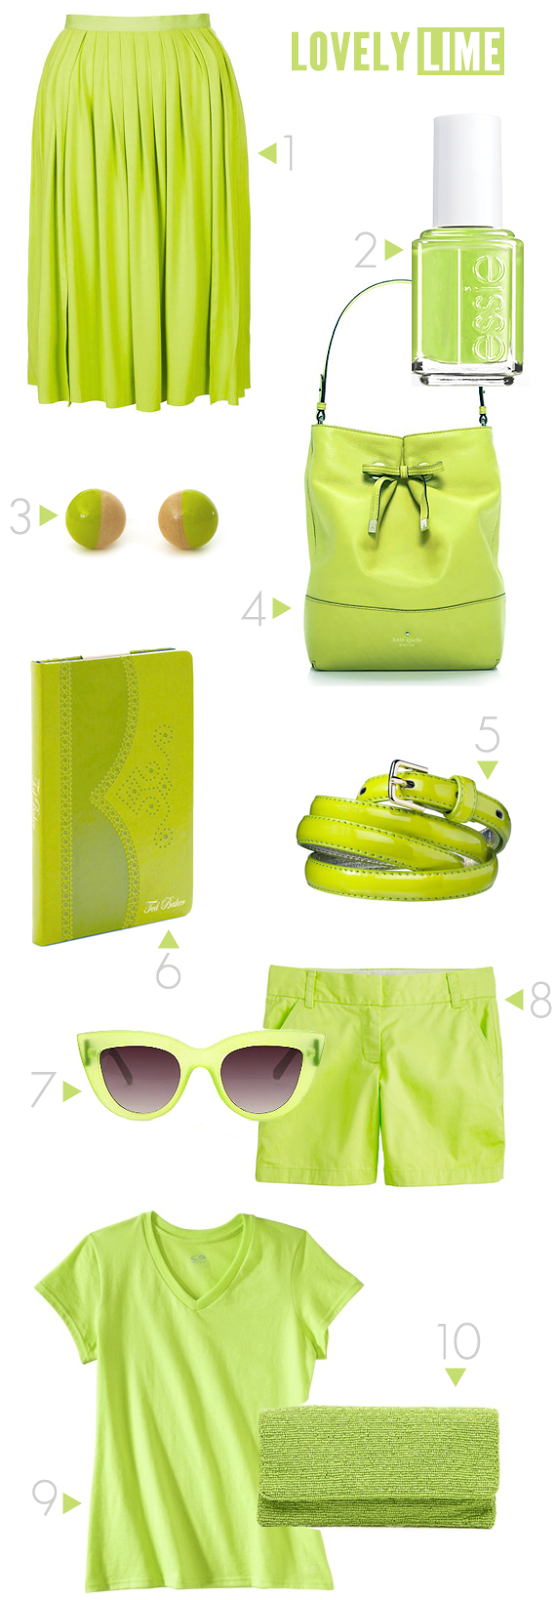 Lovely Lime // Bubby and Bean